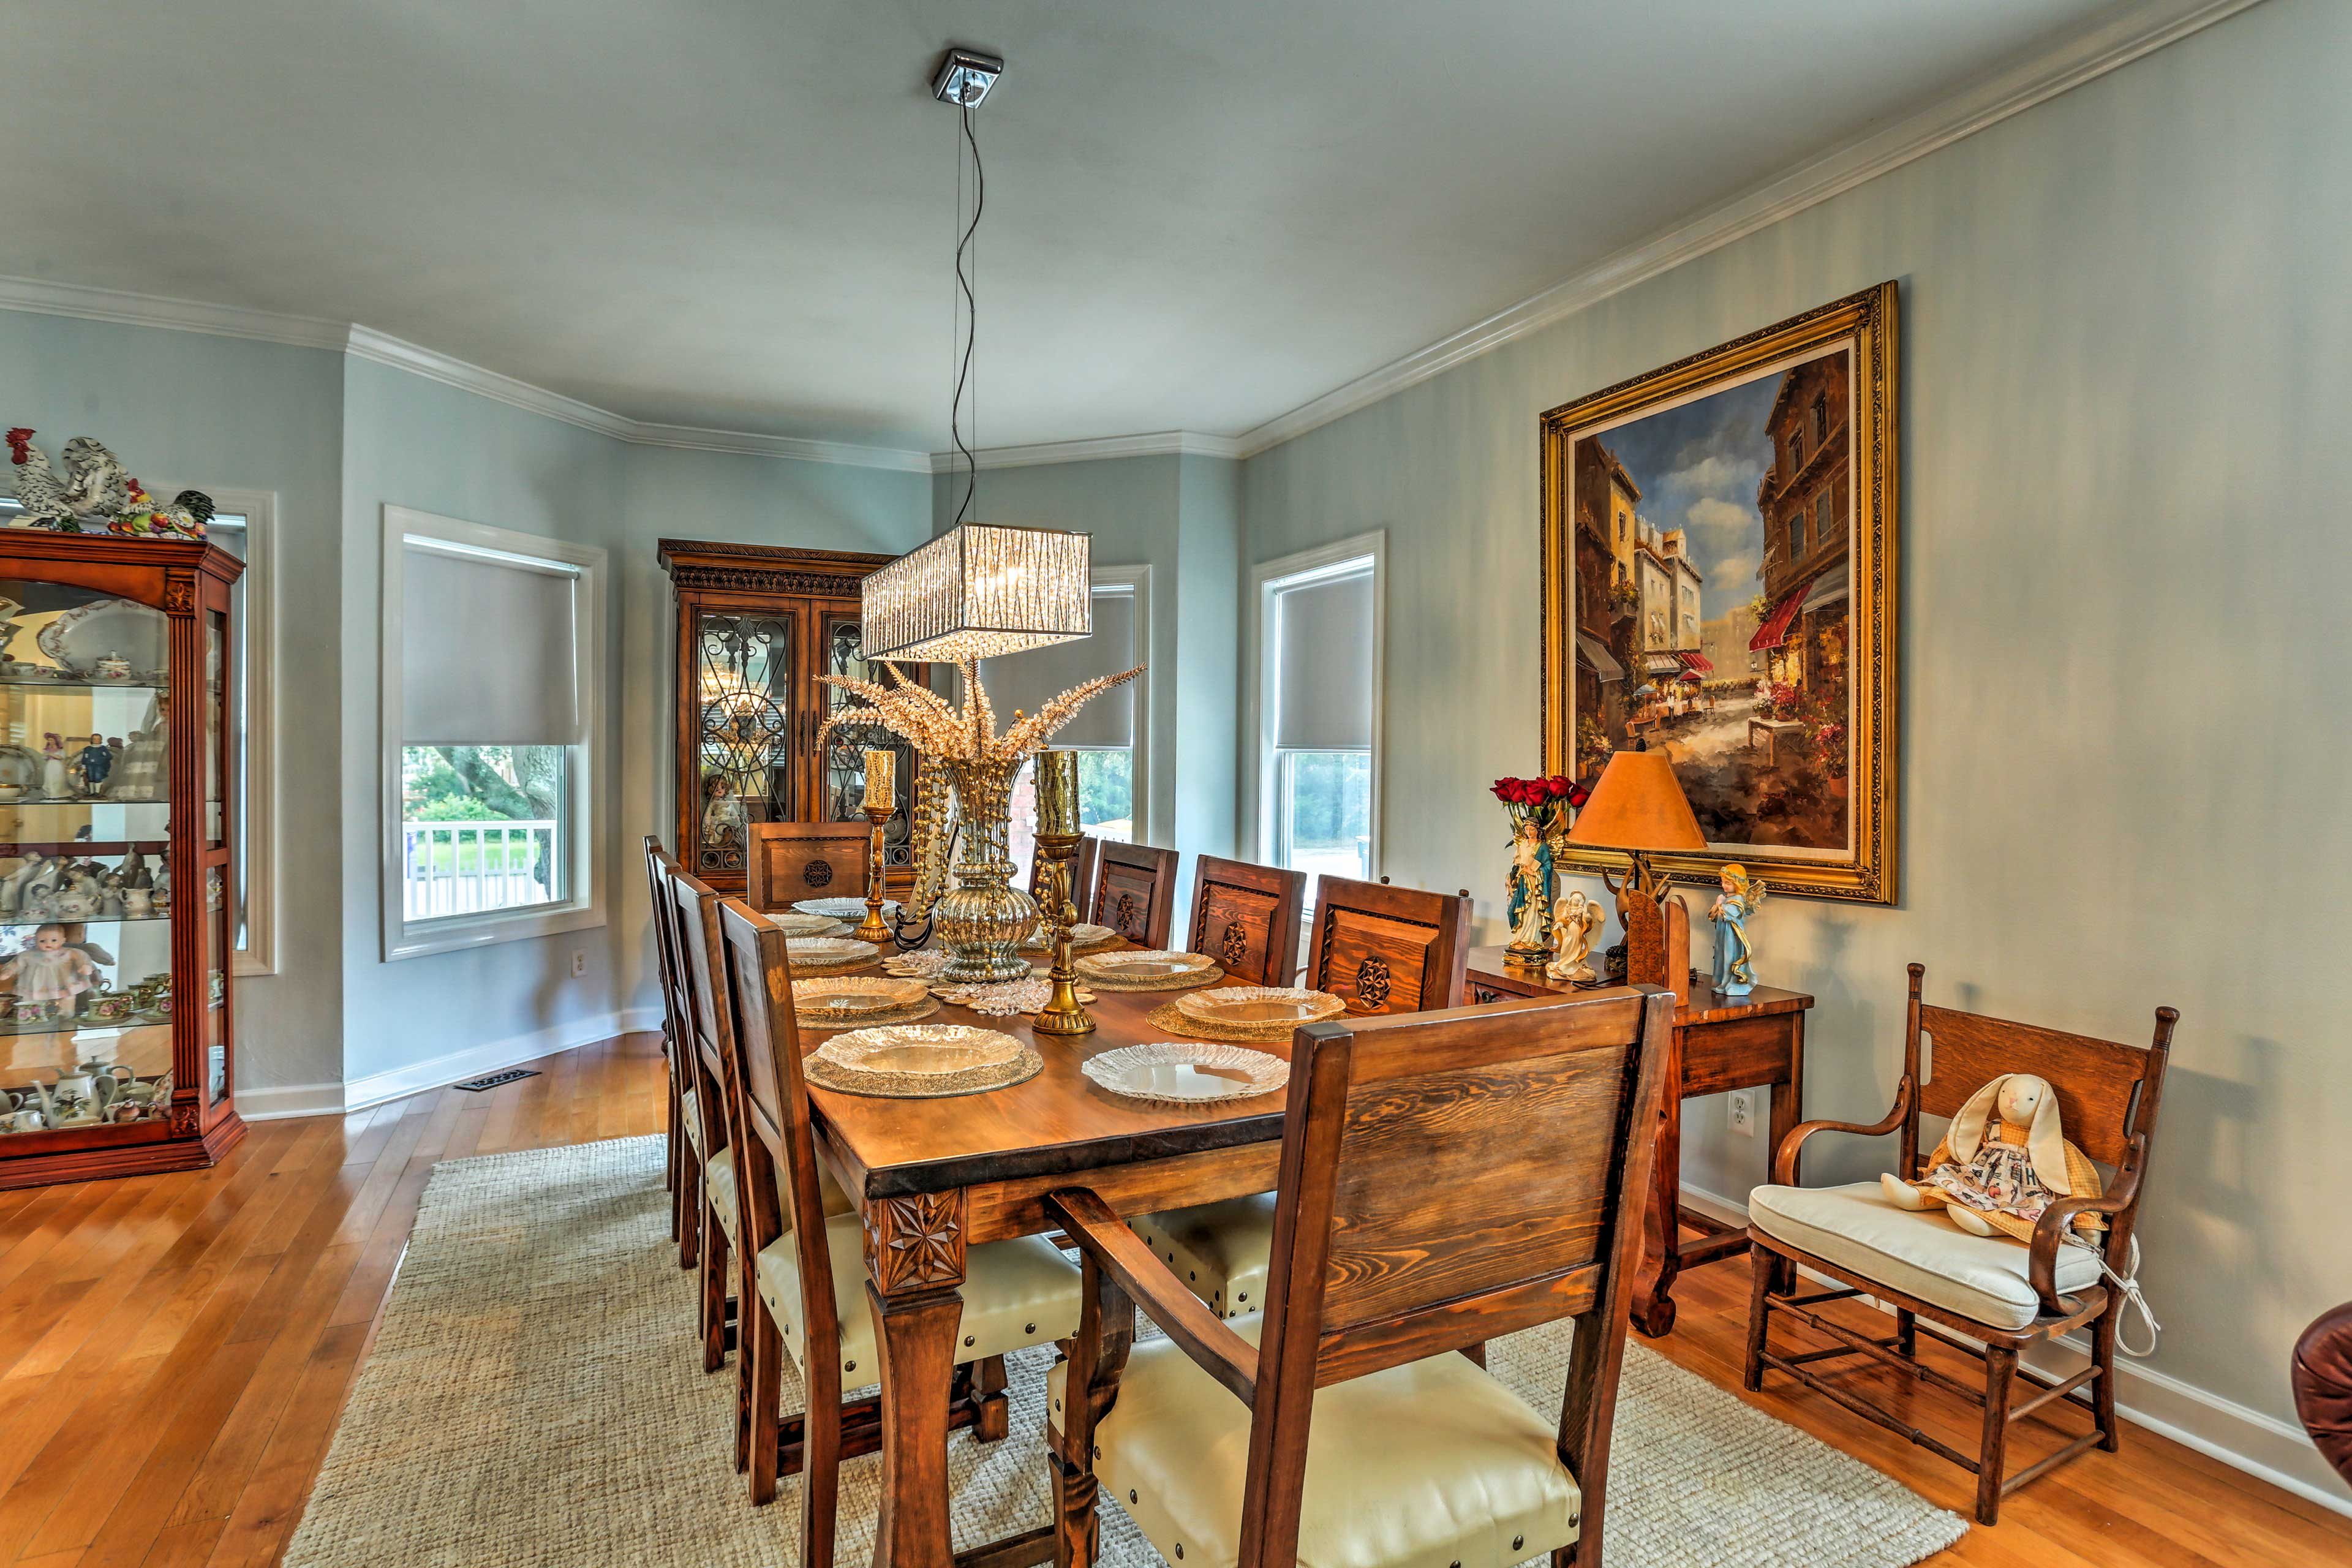 Savor feasts and family while dining around this elegant 10-person table.